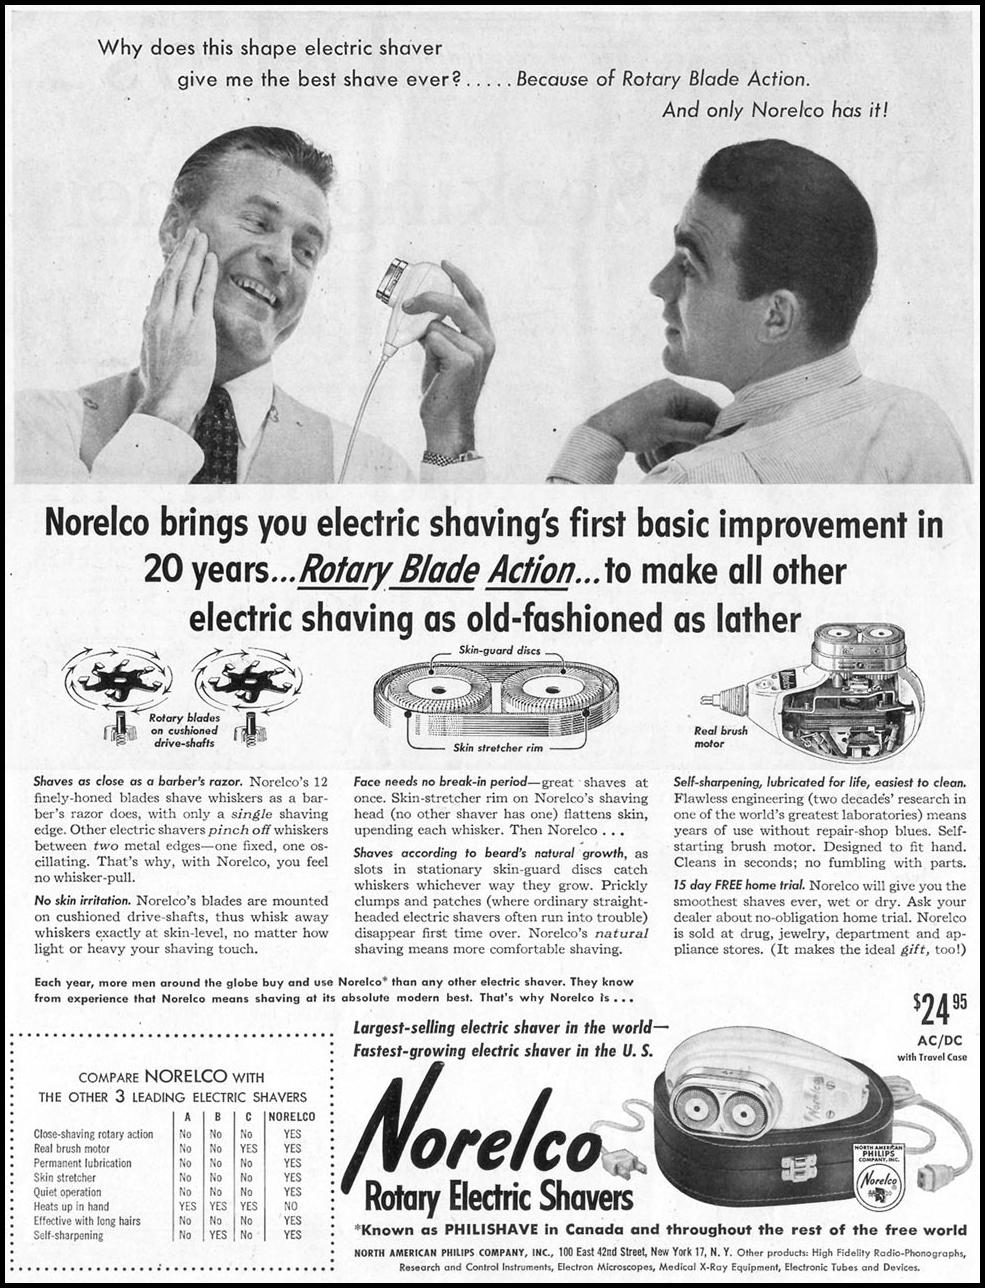 NORELCO ROTARY ELECTRIC SHAVERS SATURDAY EVENING POST 03/26/1955 p. 102